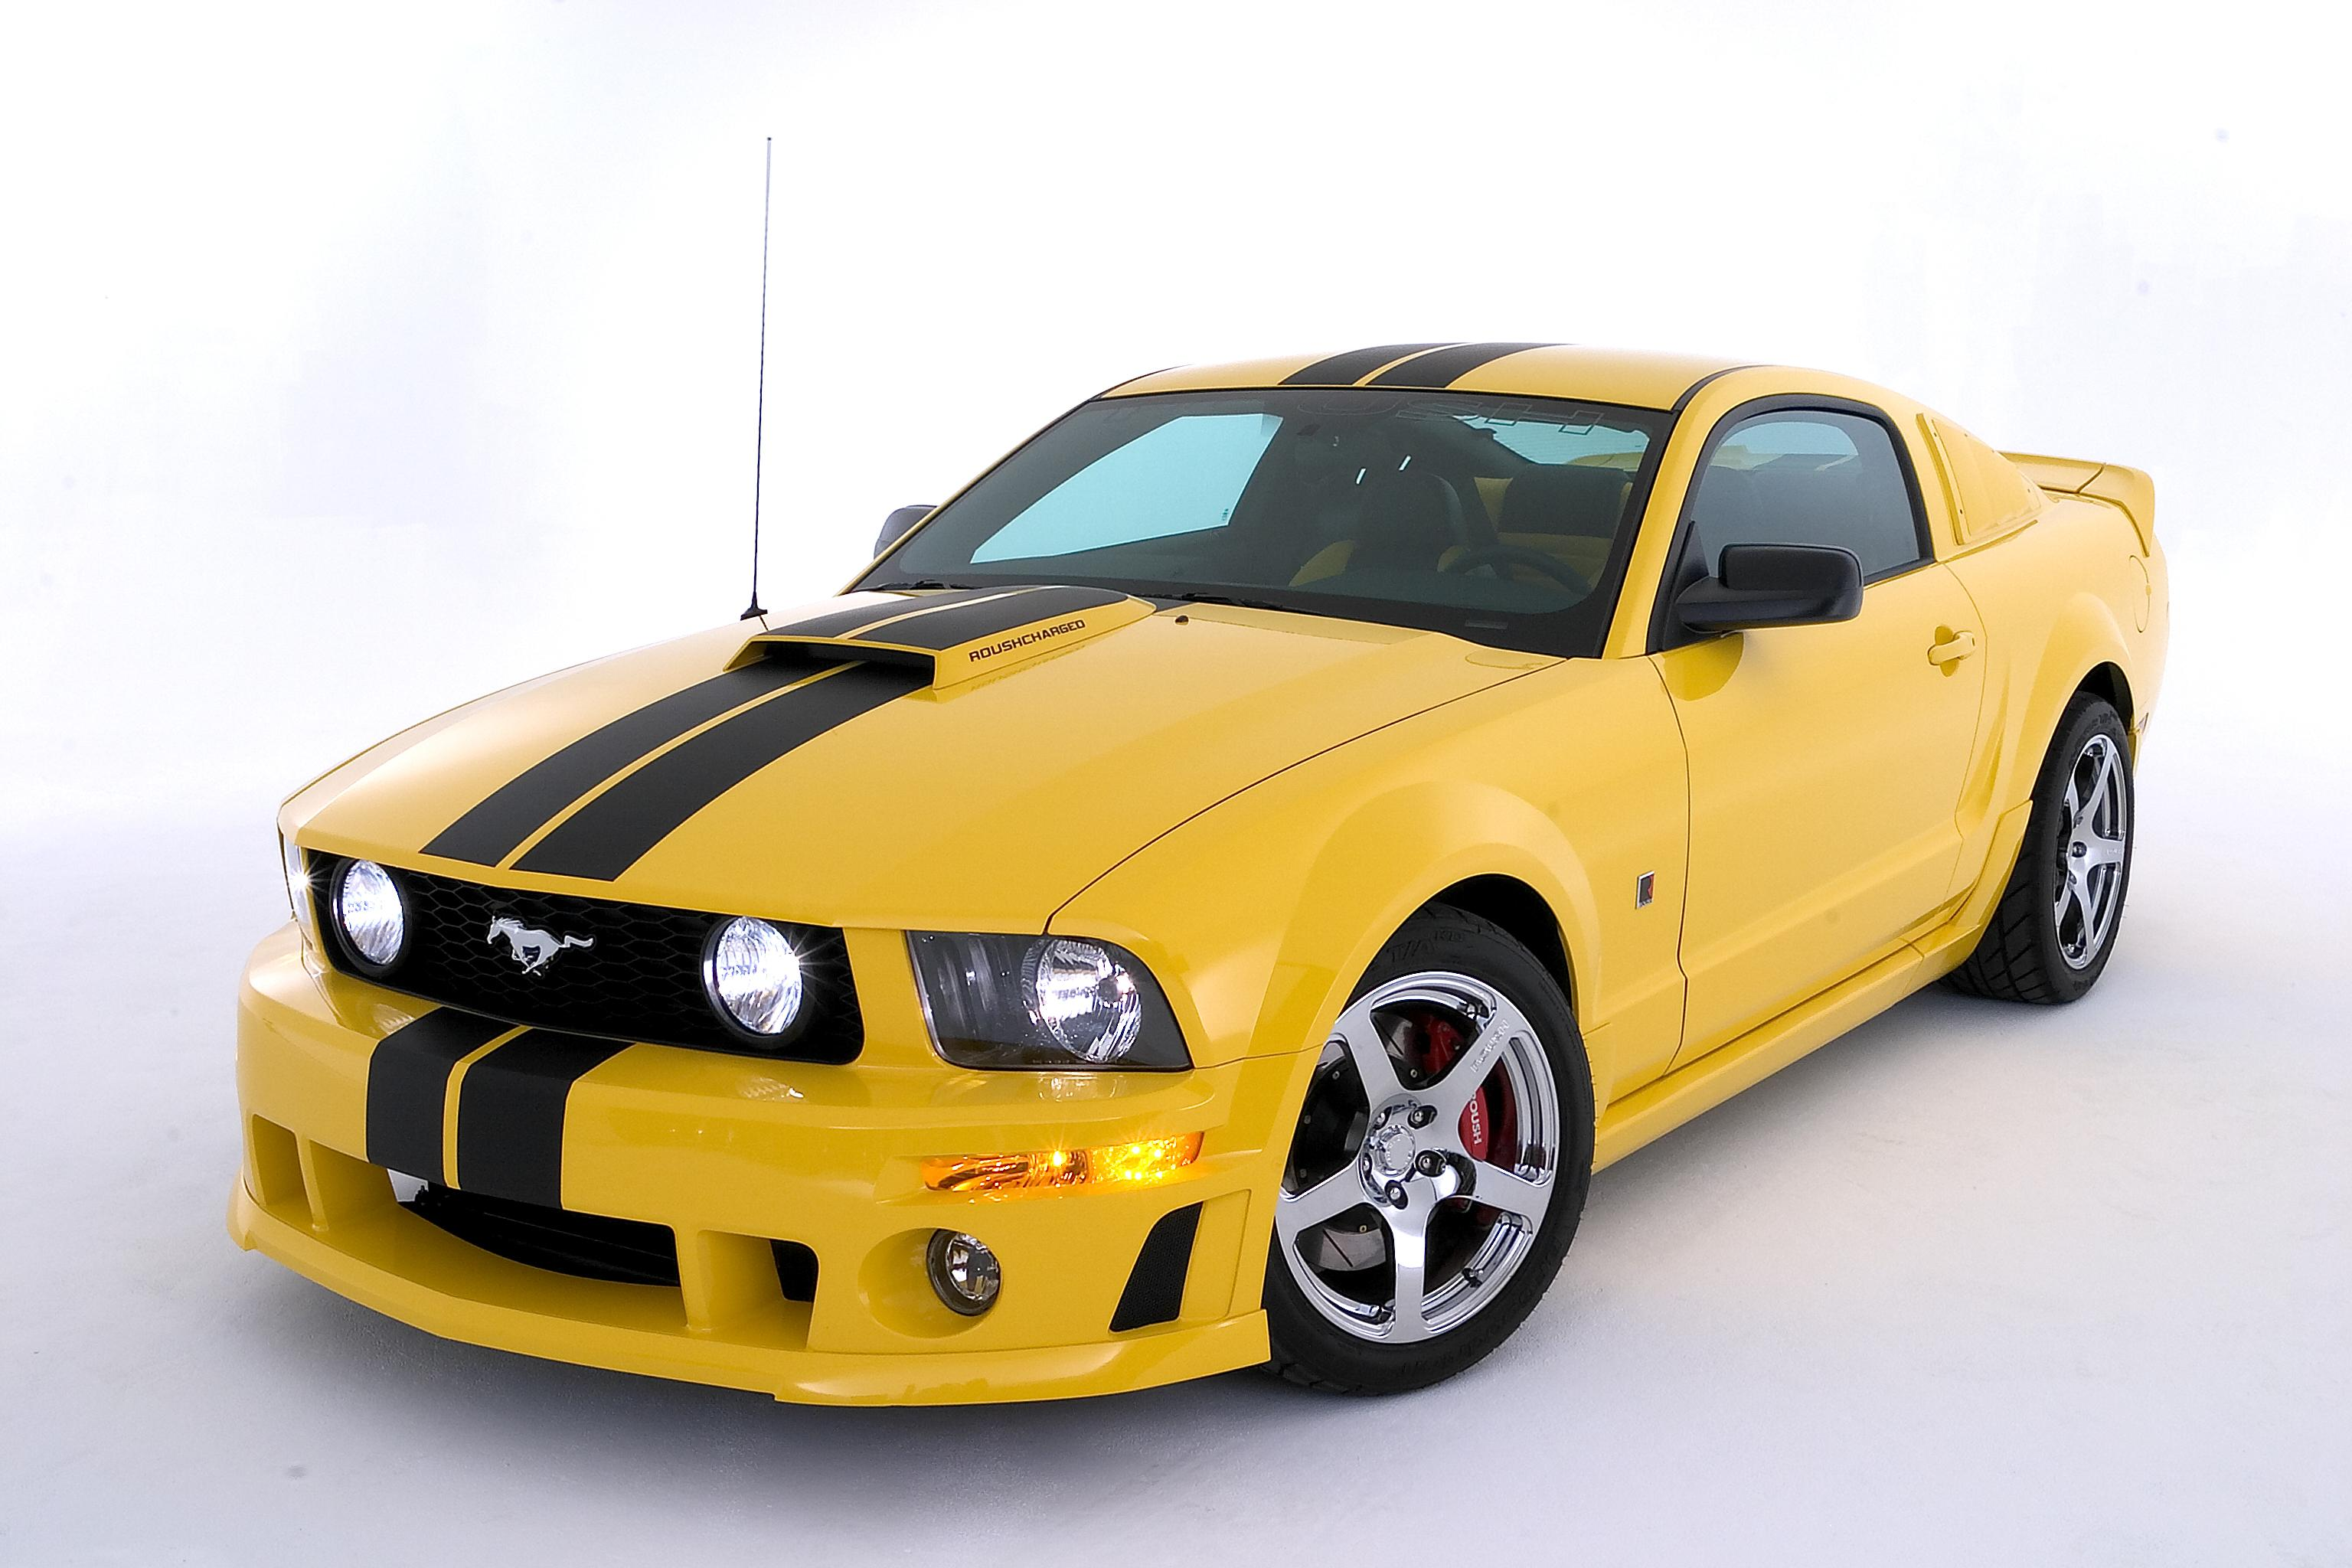 roush_stage3_mustang.jpg